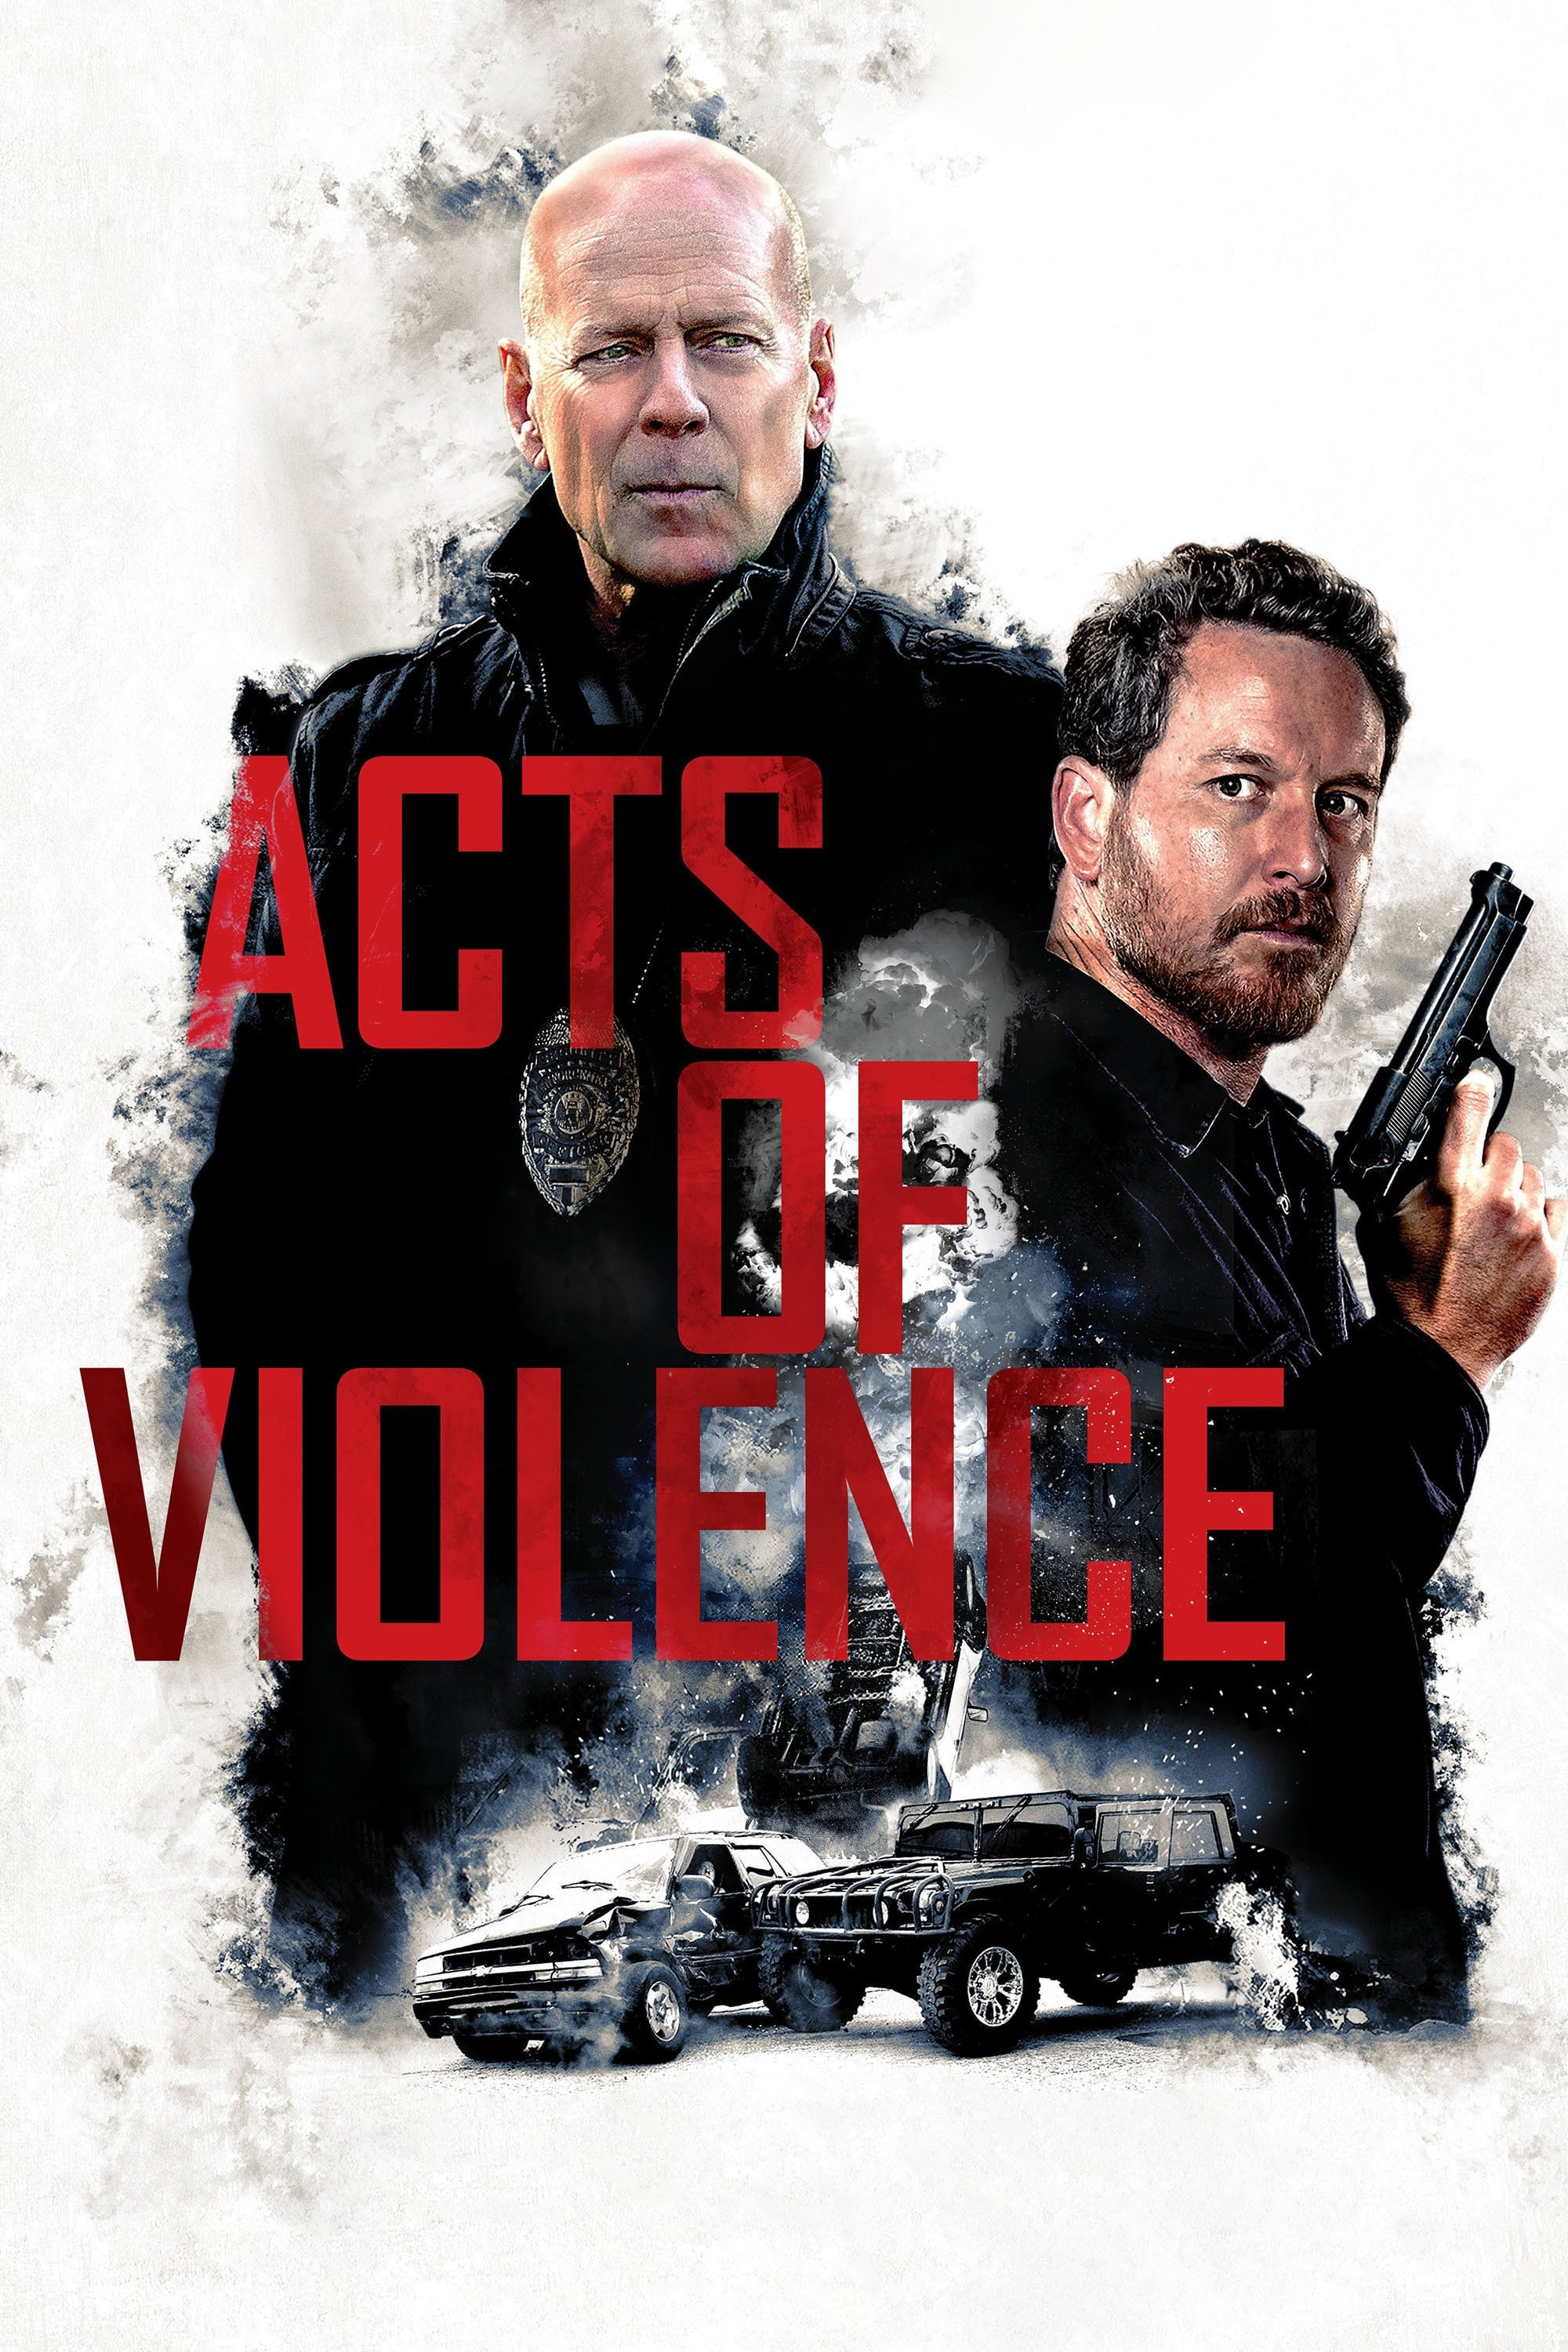 image for Acts of Violence